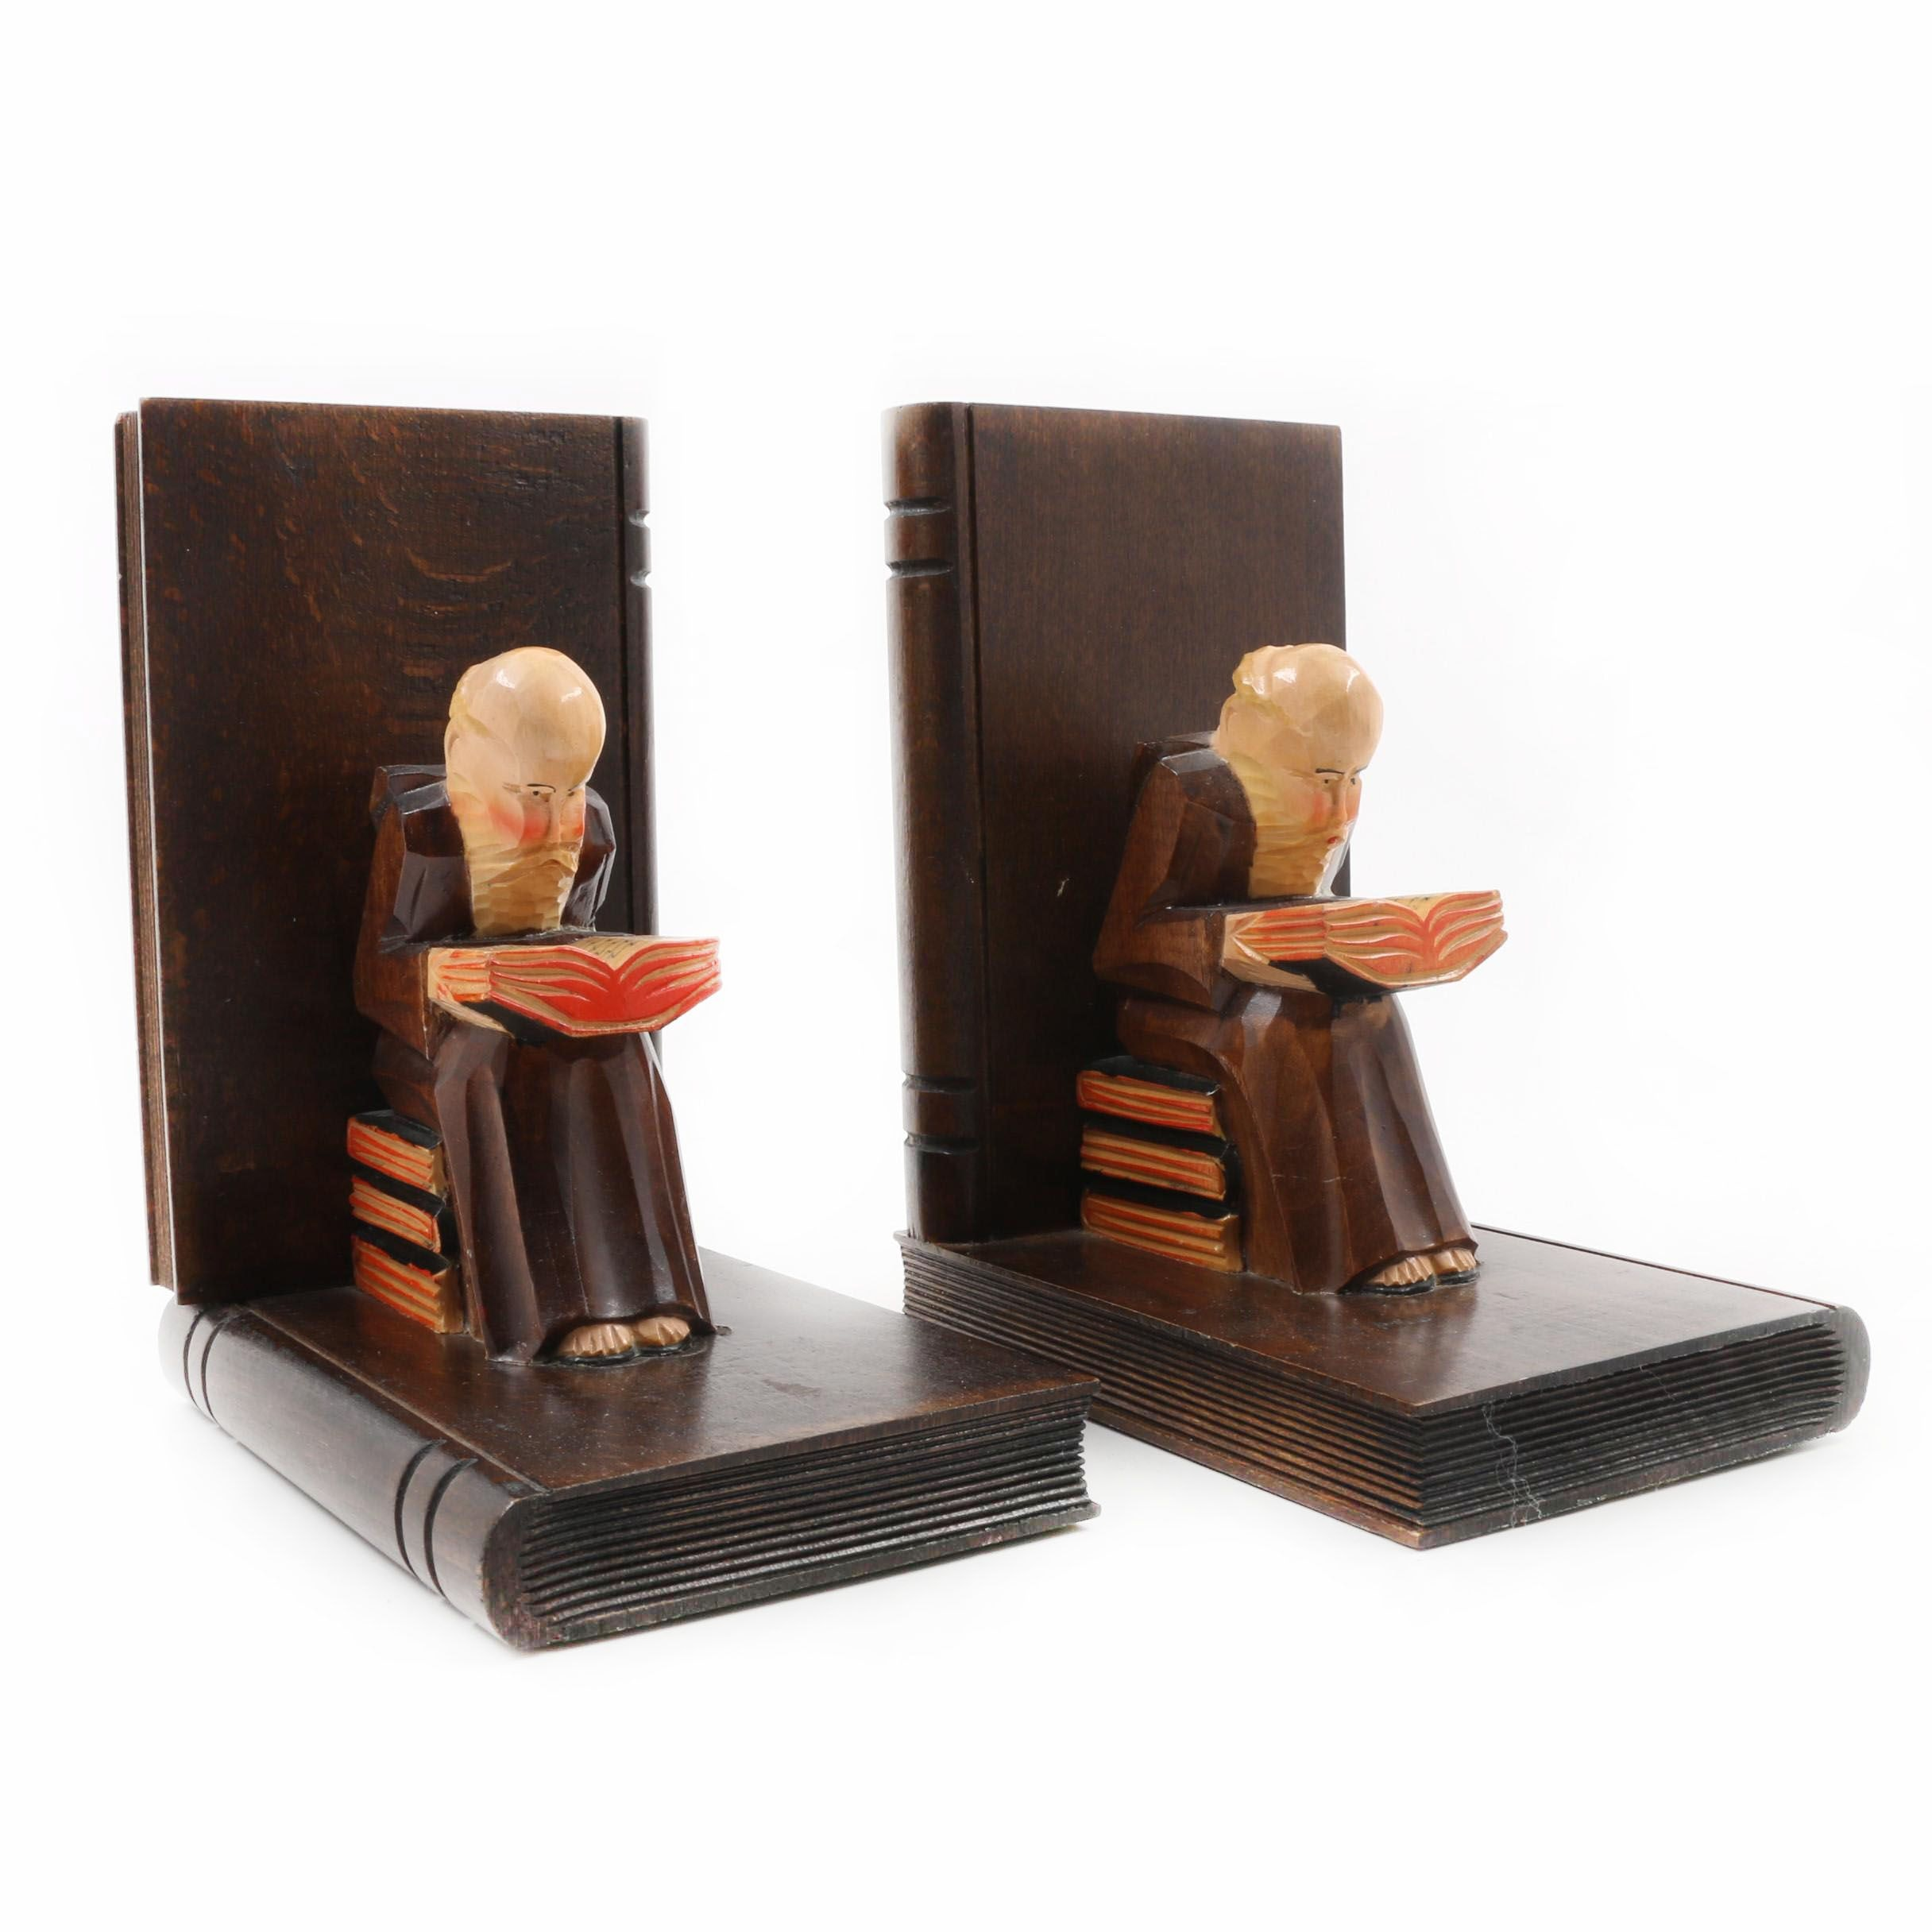 Rhon Sepp Carved Wood Bookends From Germany